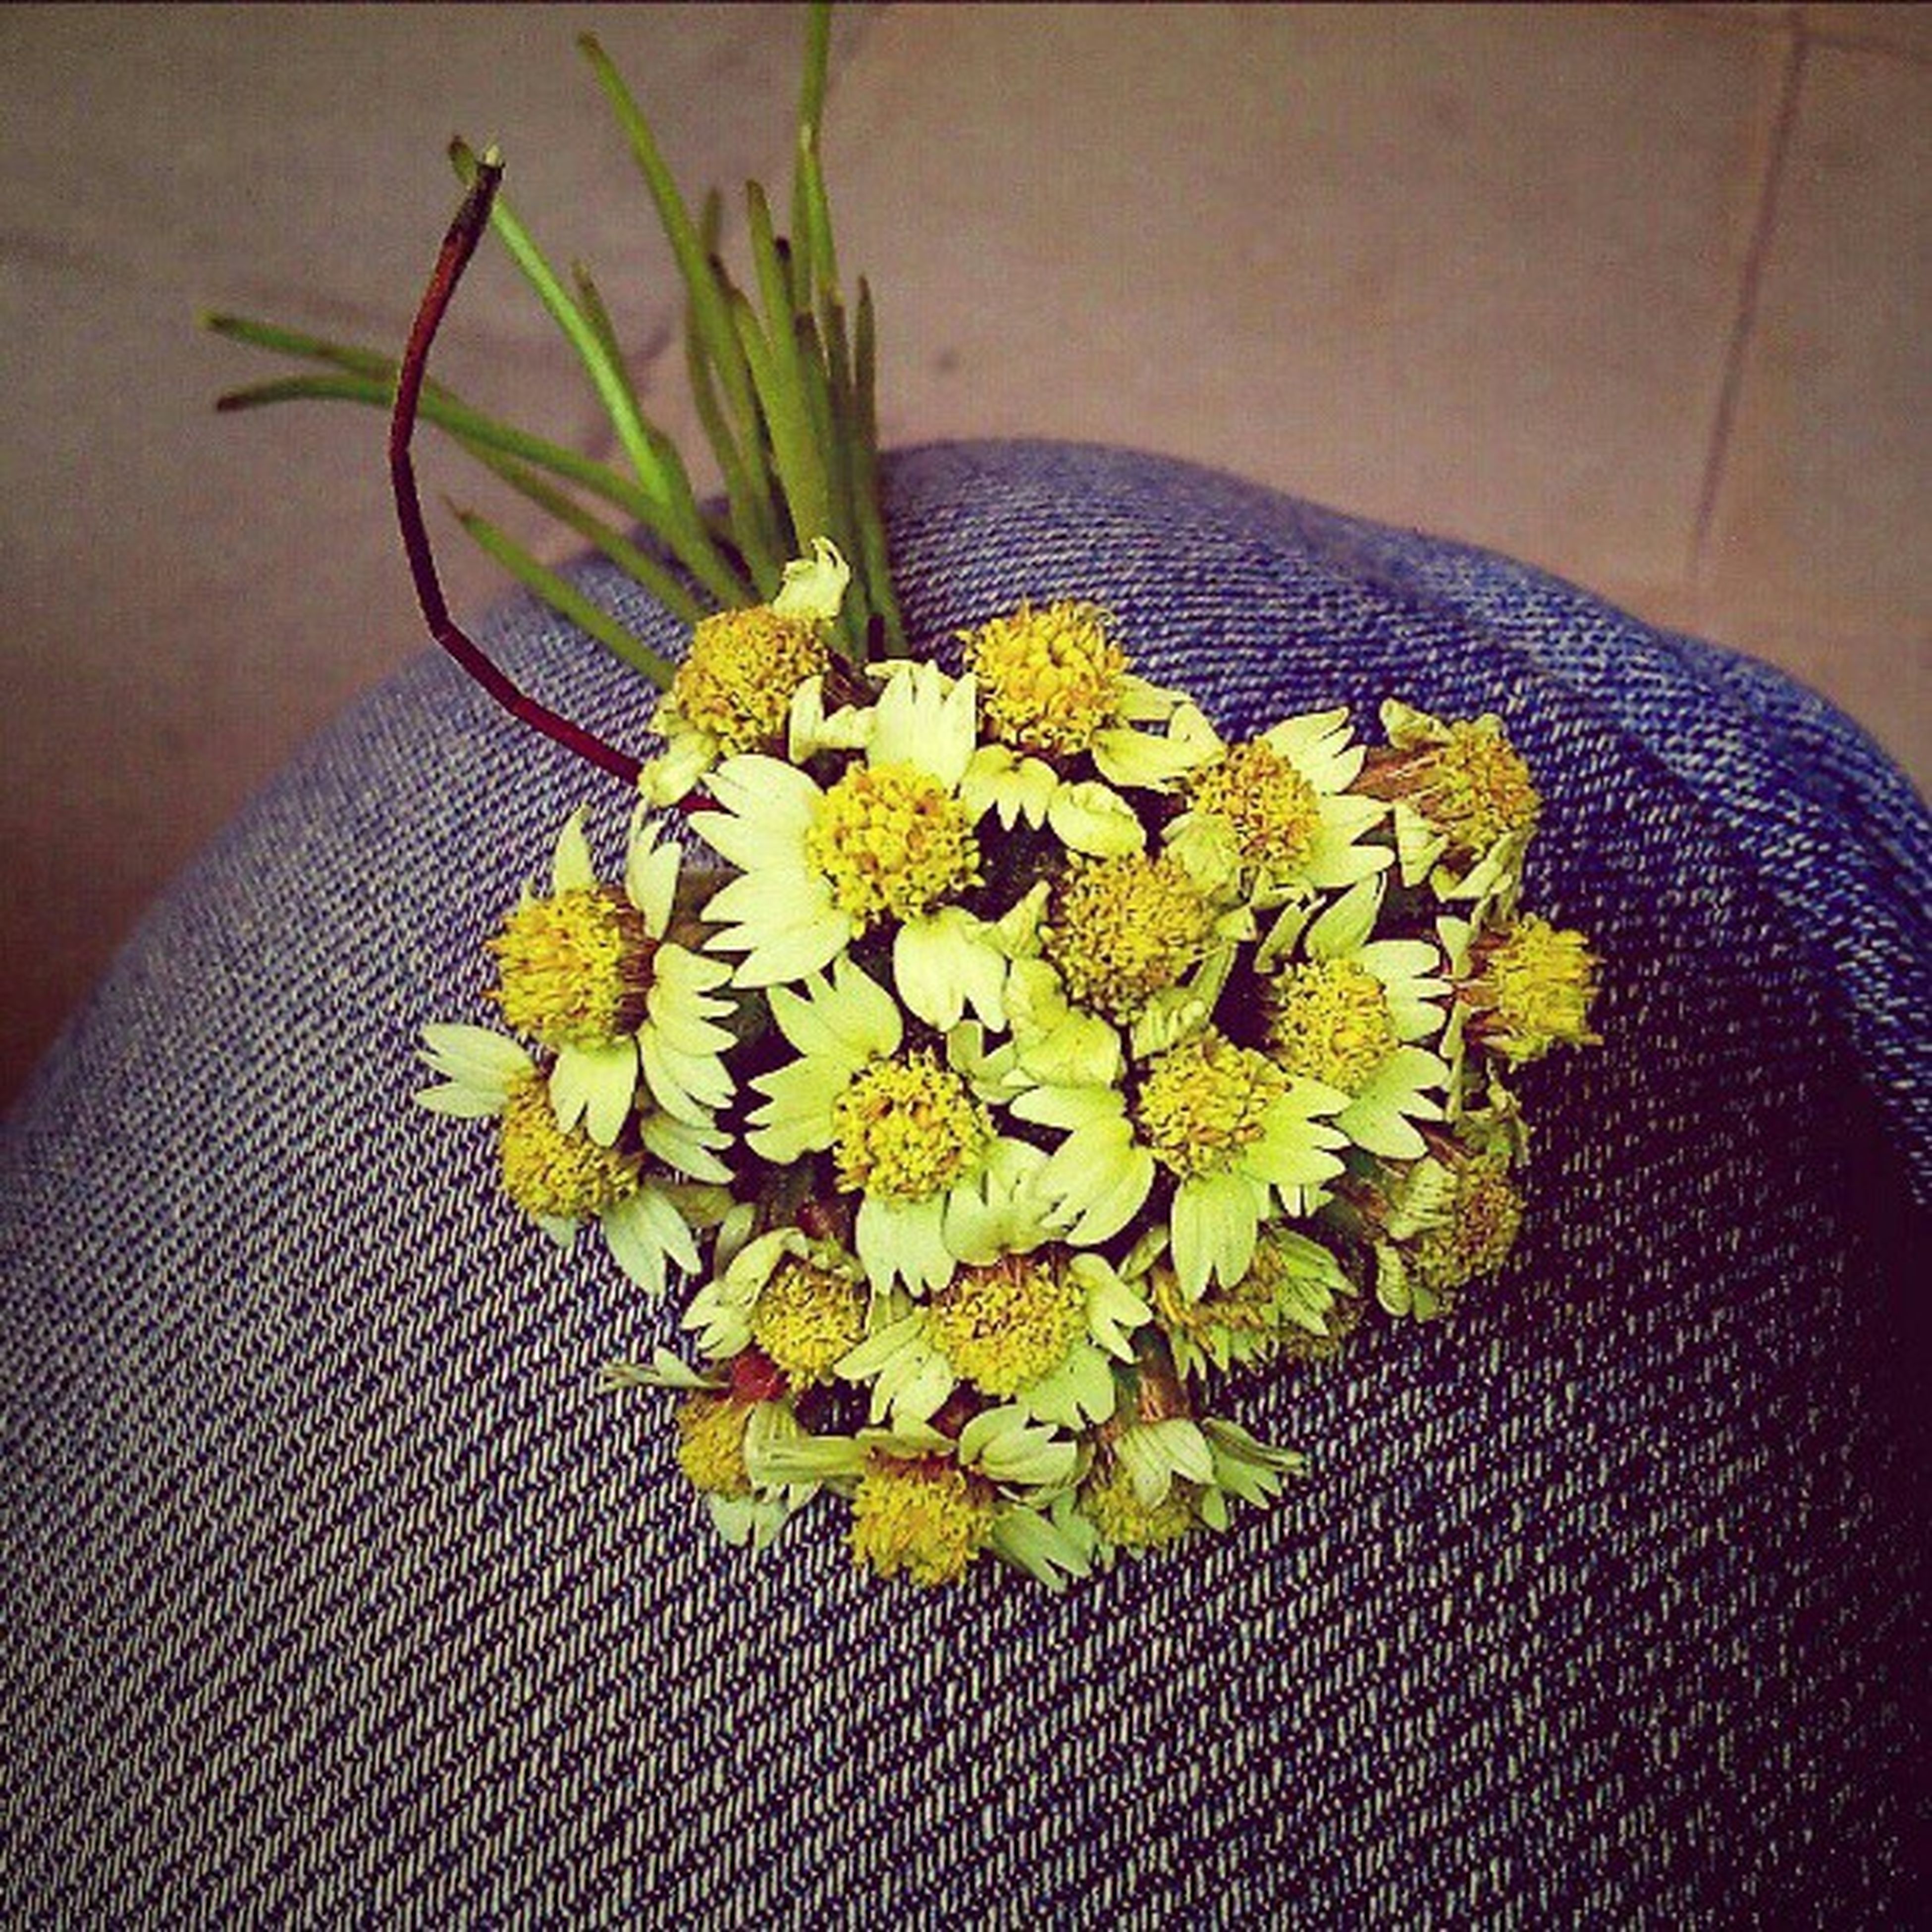 flower, indoors, high angle view, freshness, fragility, one animal, leaf, close-up, plant, animal themes, table, insect, petal, potted plant, nature, yellow, vase, no people, beauty in nature, flower head